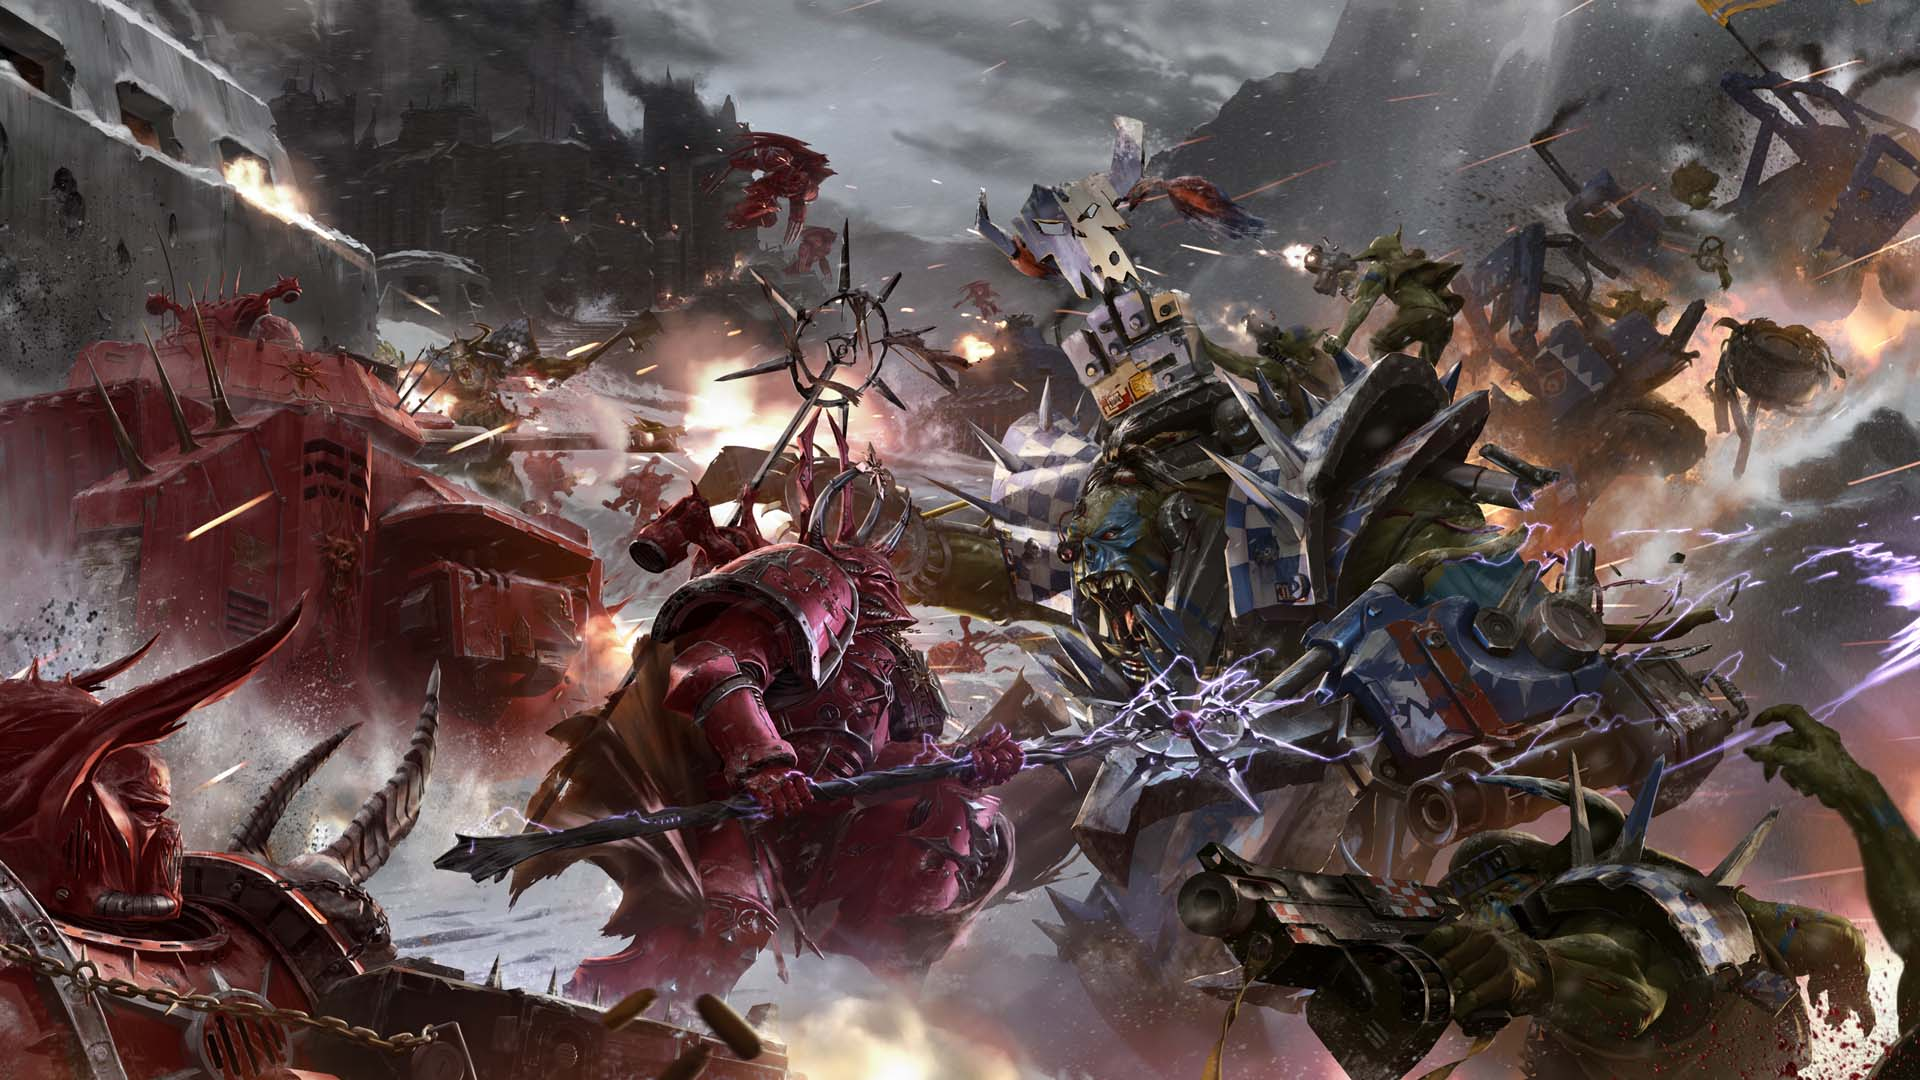 Free Download Orcs Vs Chaos Space Marines Wallpaper From Warhammer